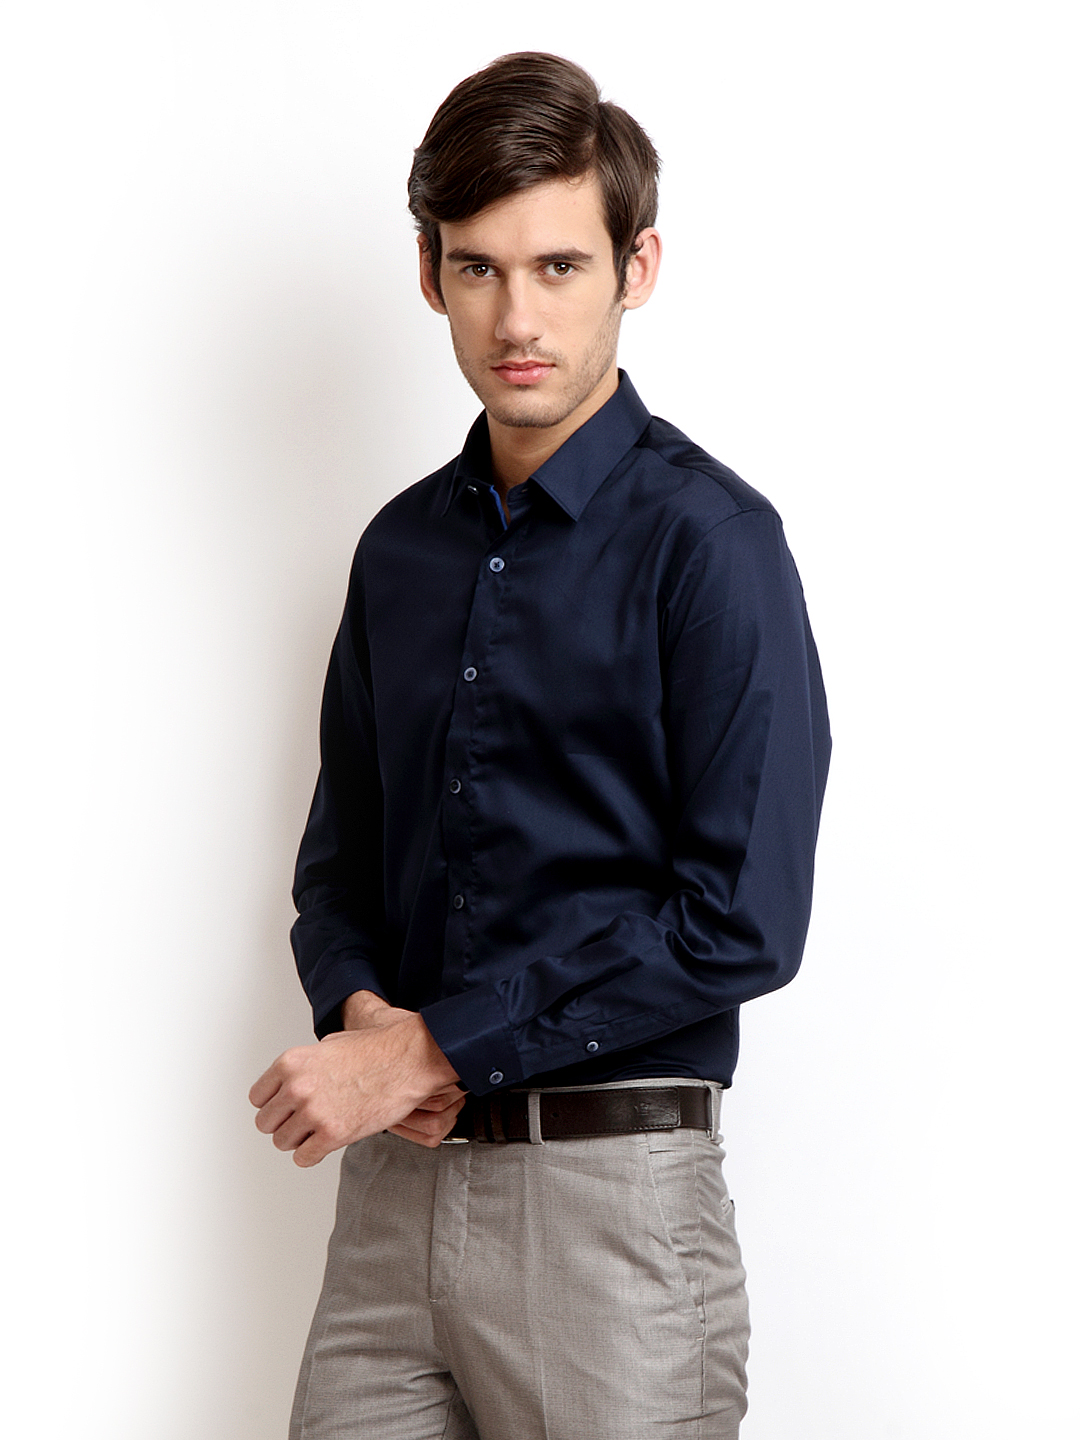 more shirts from geoffrey beene all products from geoffrey beene